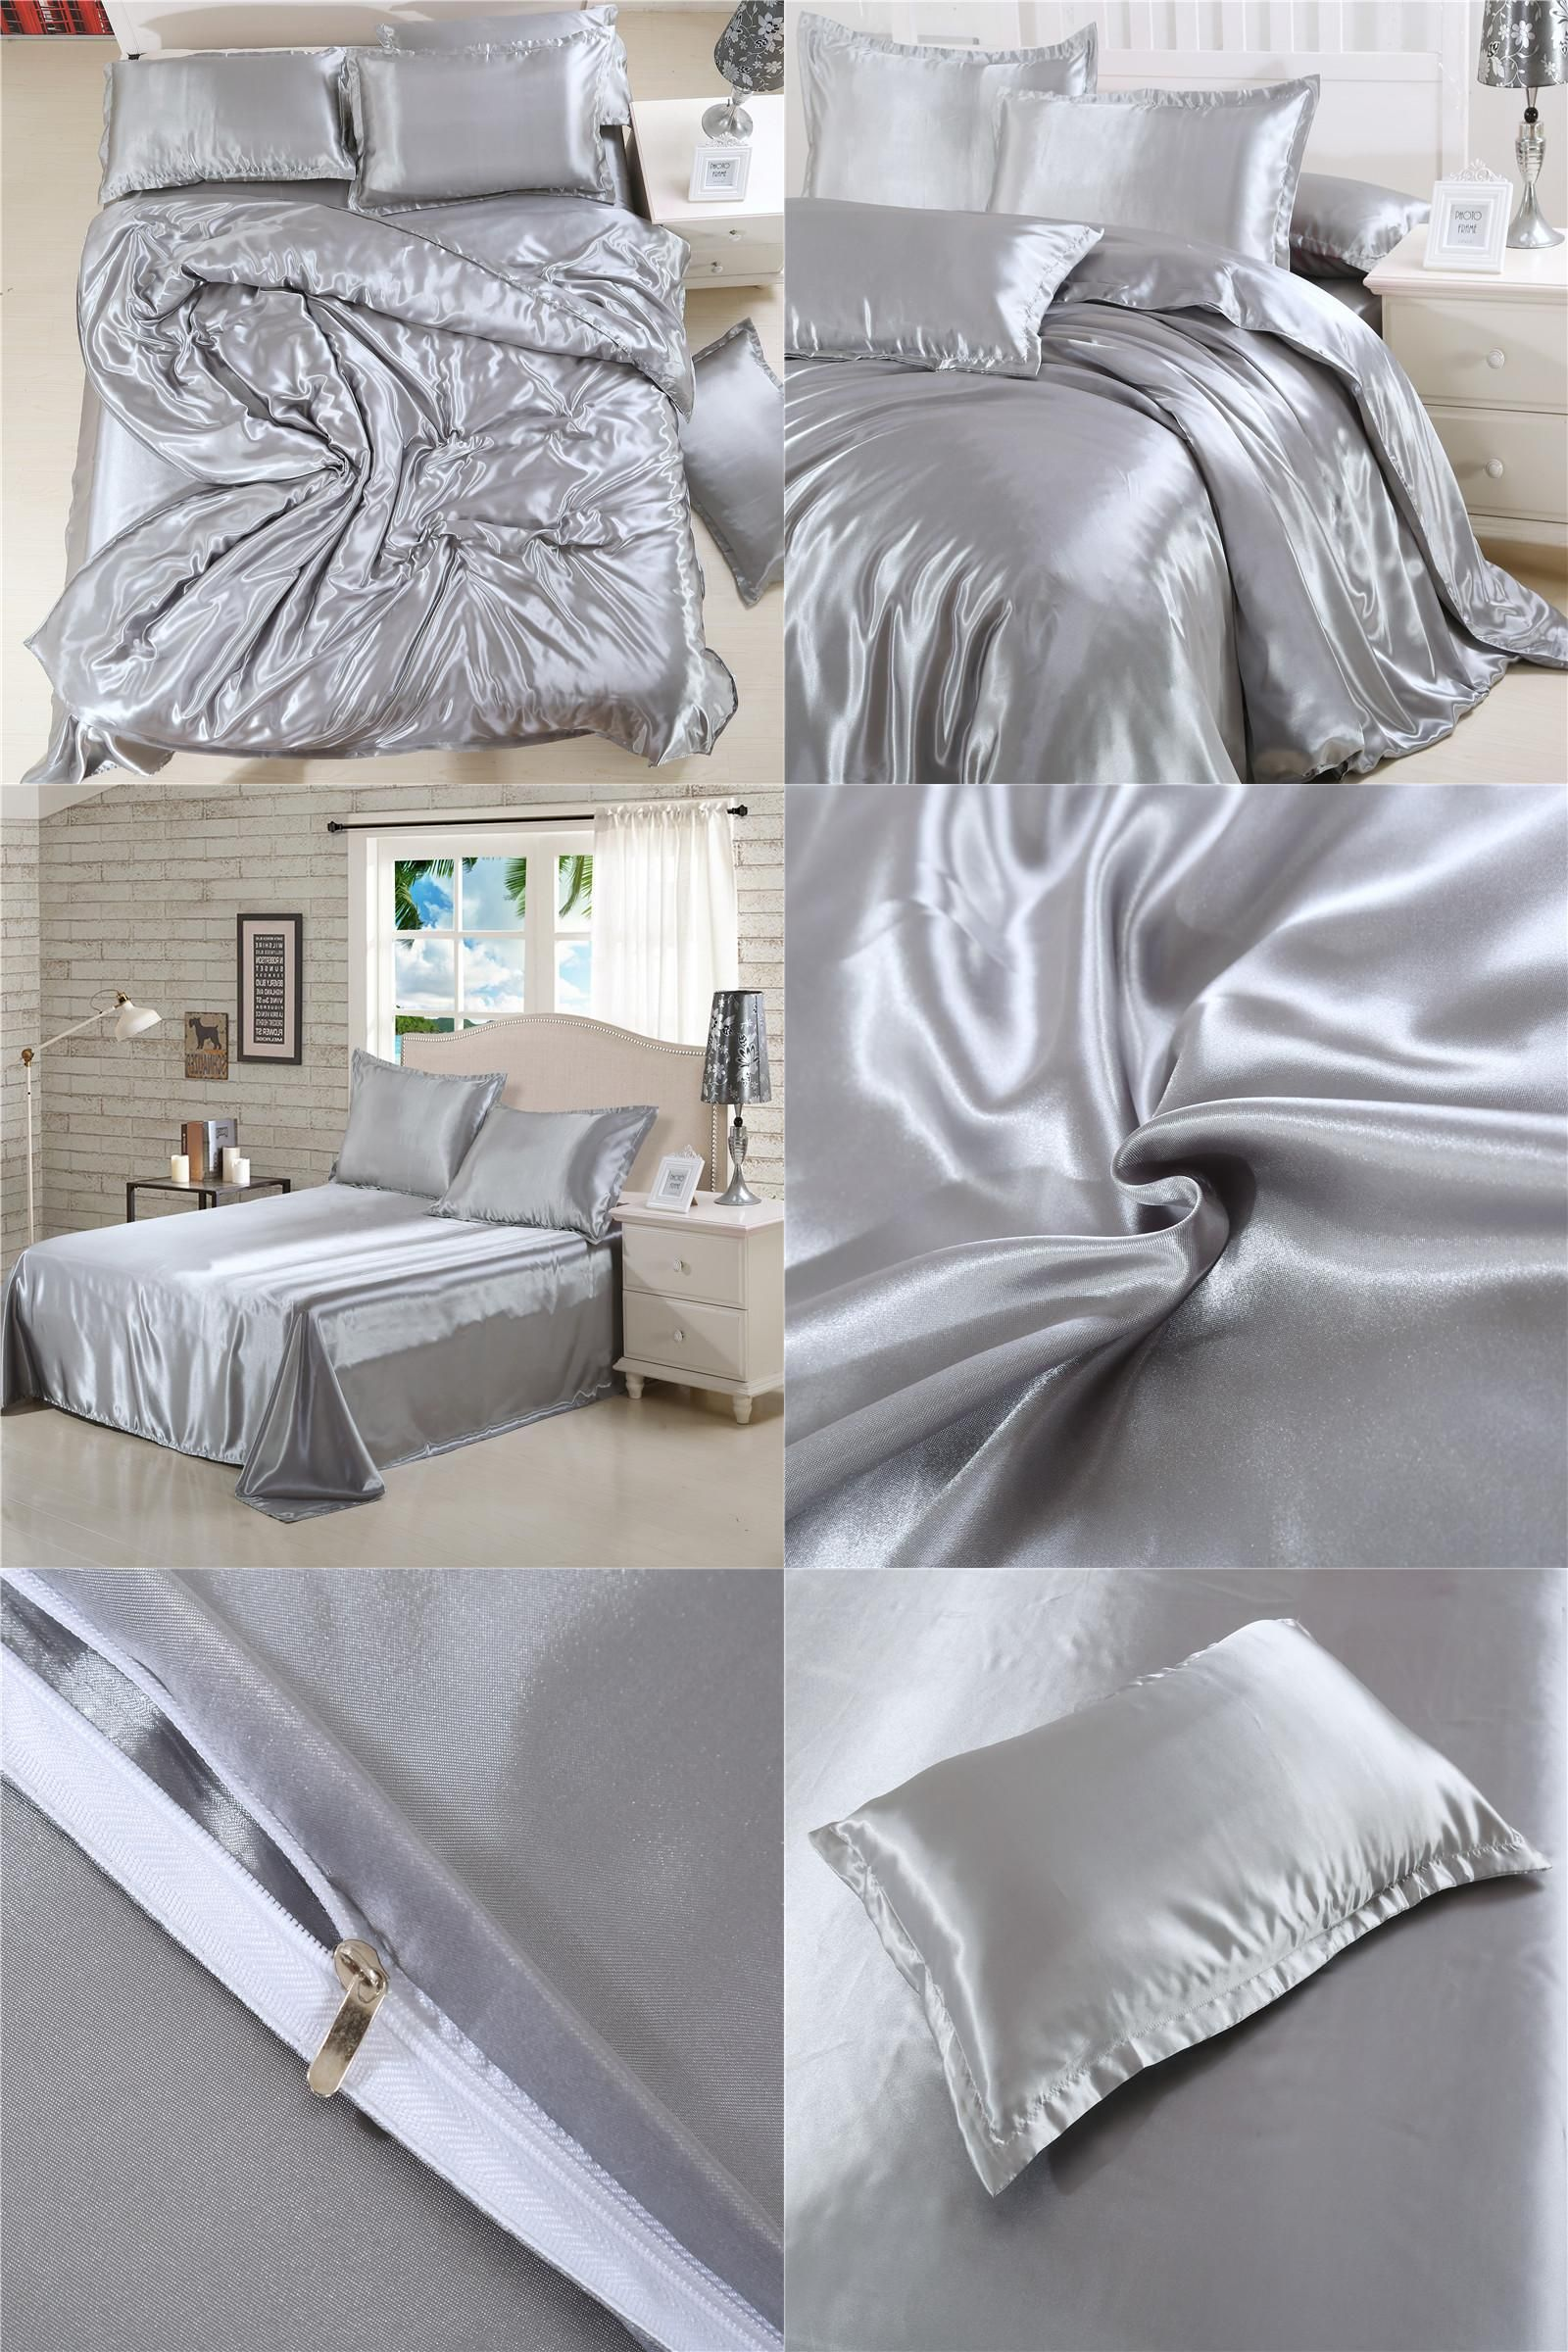 where cotton shop a from the pin online next and duvet cover heather to buy dusky cologne uk